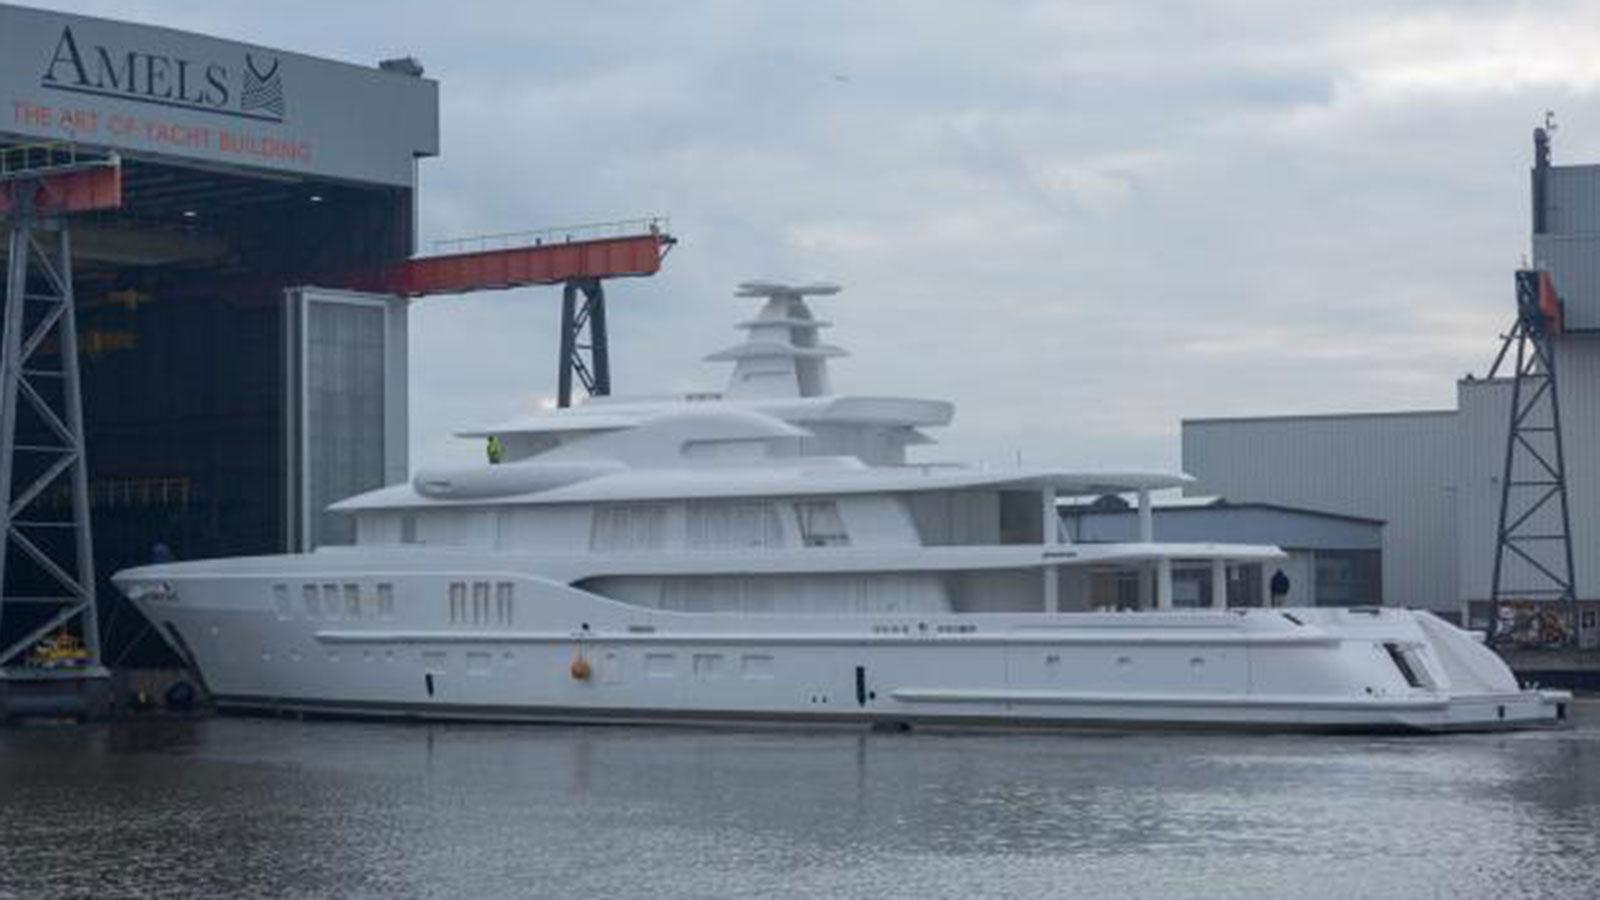 amels 24202 motoryacht amels le 242 74m 2017 under construction